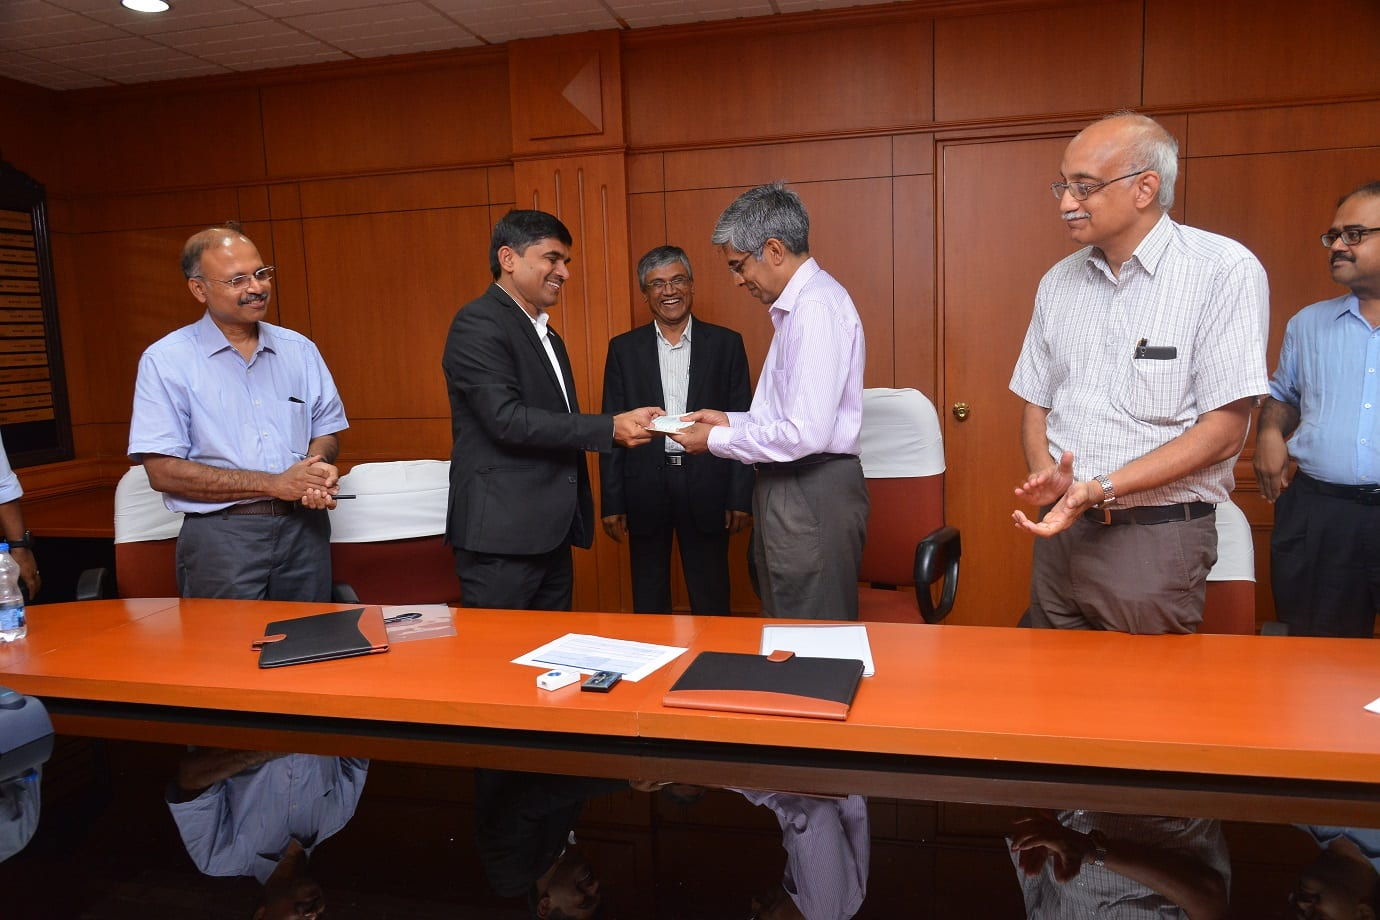 IIT Madras signs MoU with Robert Bosch Engineering and Business Solutions to set up research centre to address data sciences and artificial intelligence